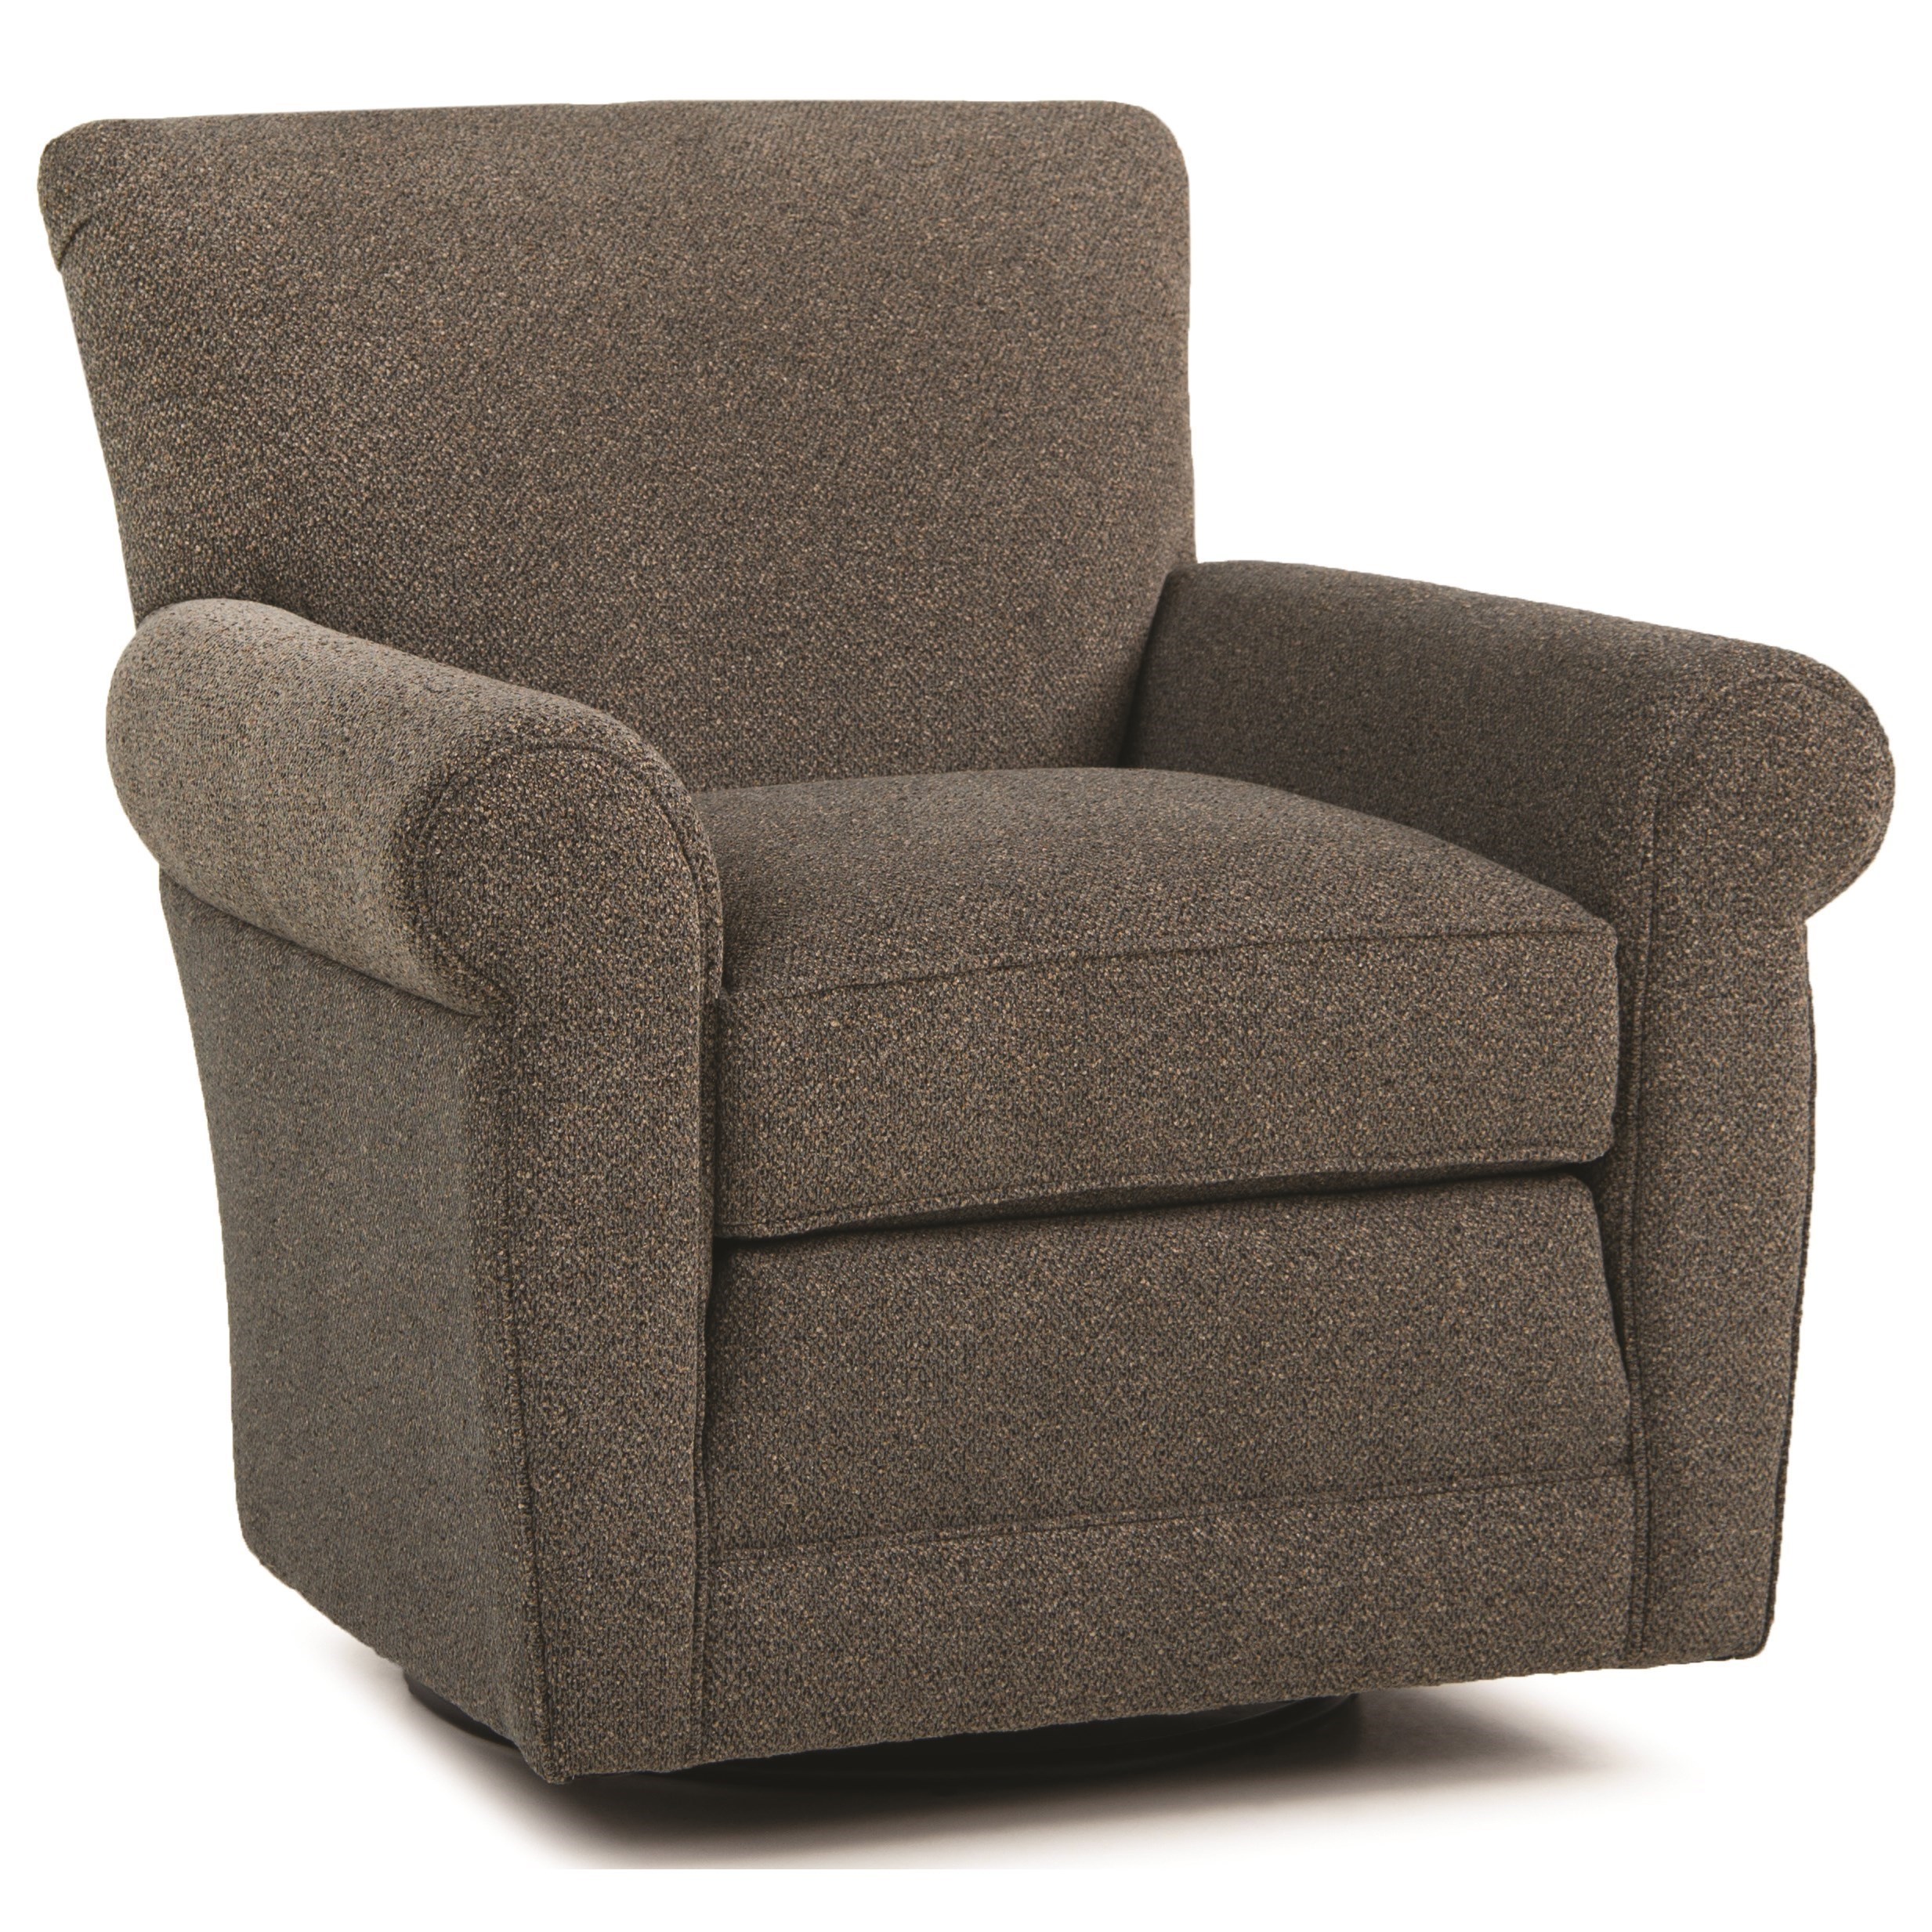 514 Swivel Glider Chair by Smith Brothers at Pilgrim Furniture City